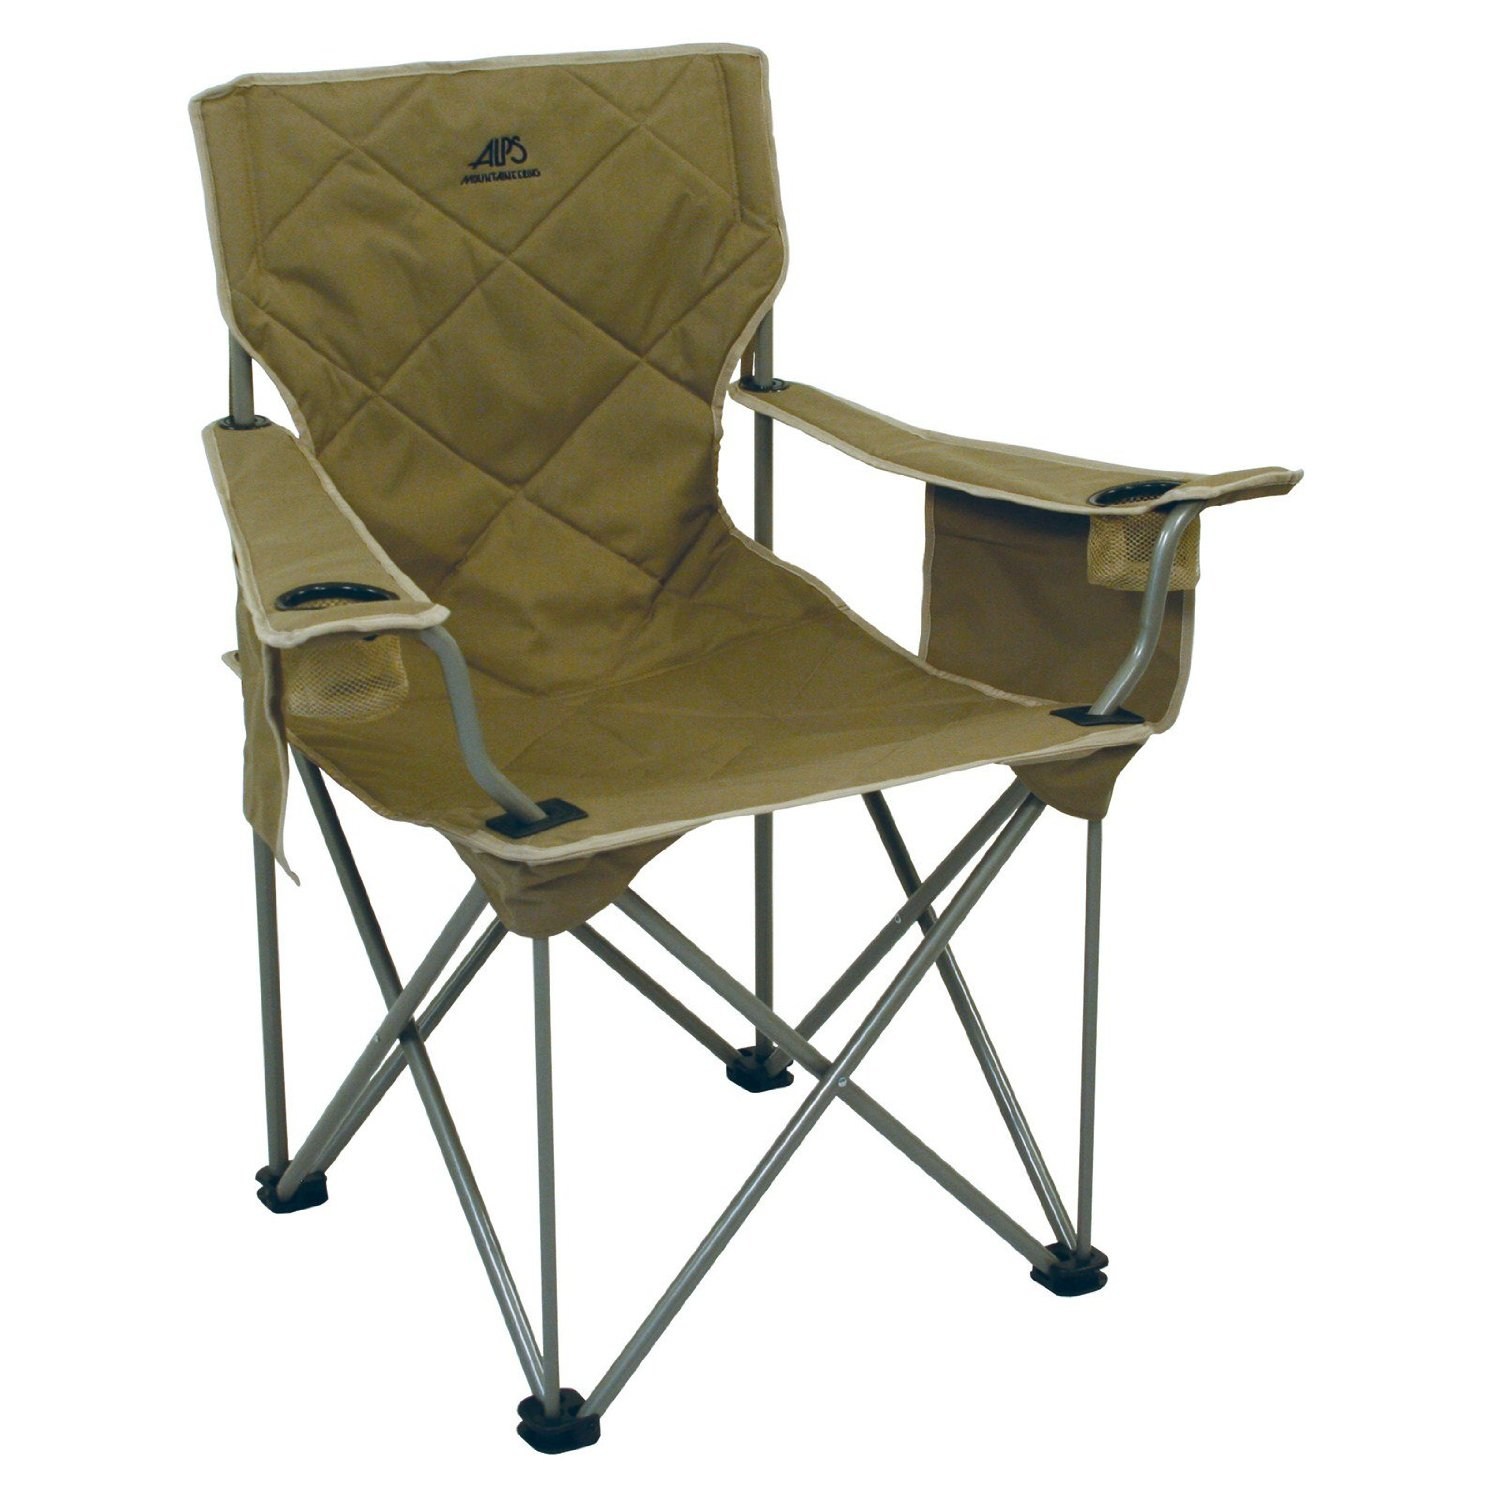 Most Comfortable Camp Chair